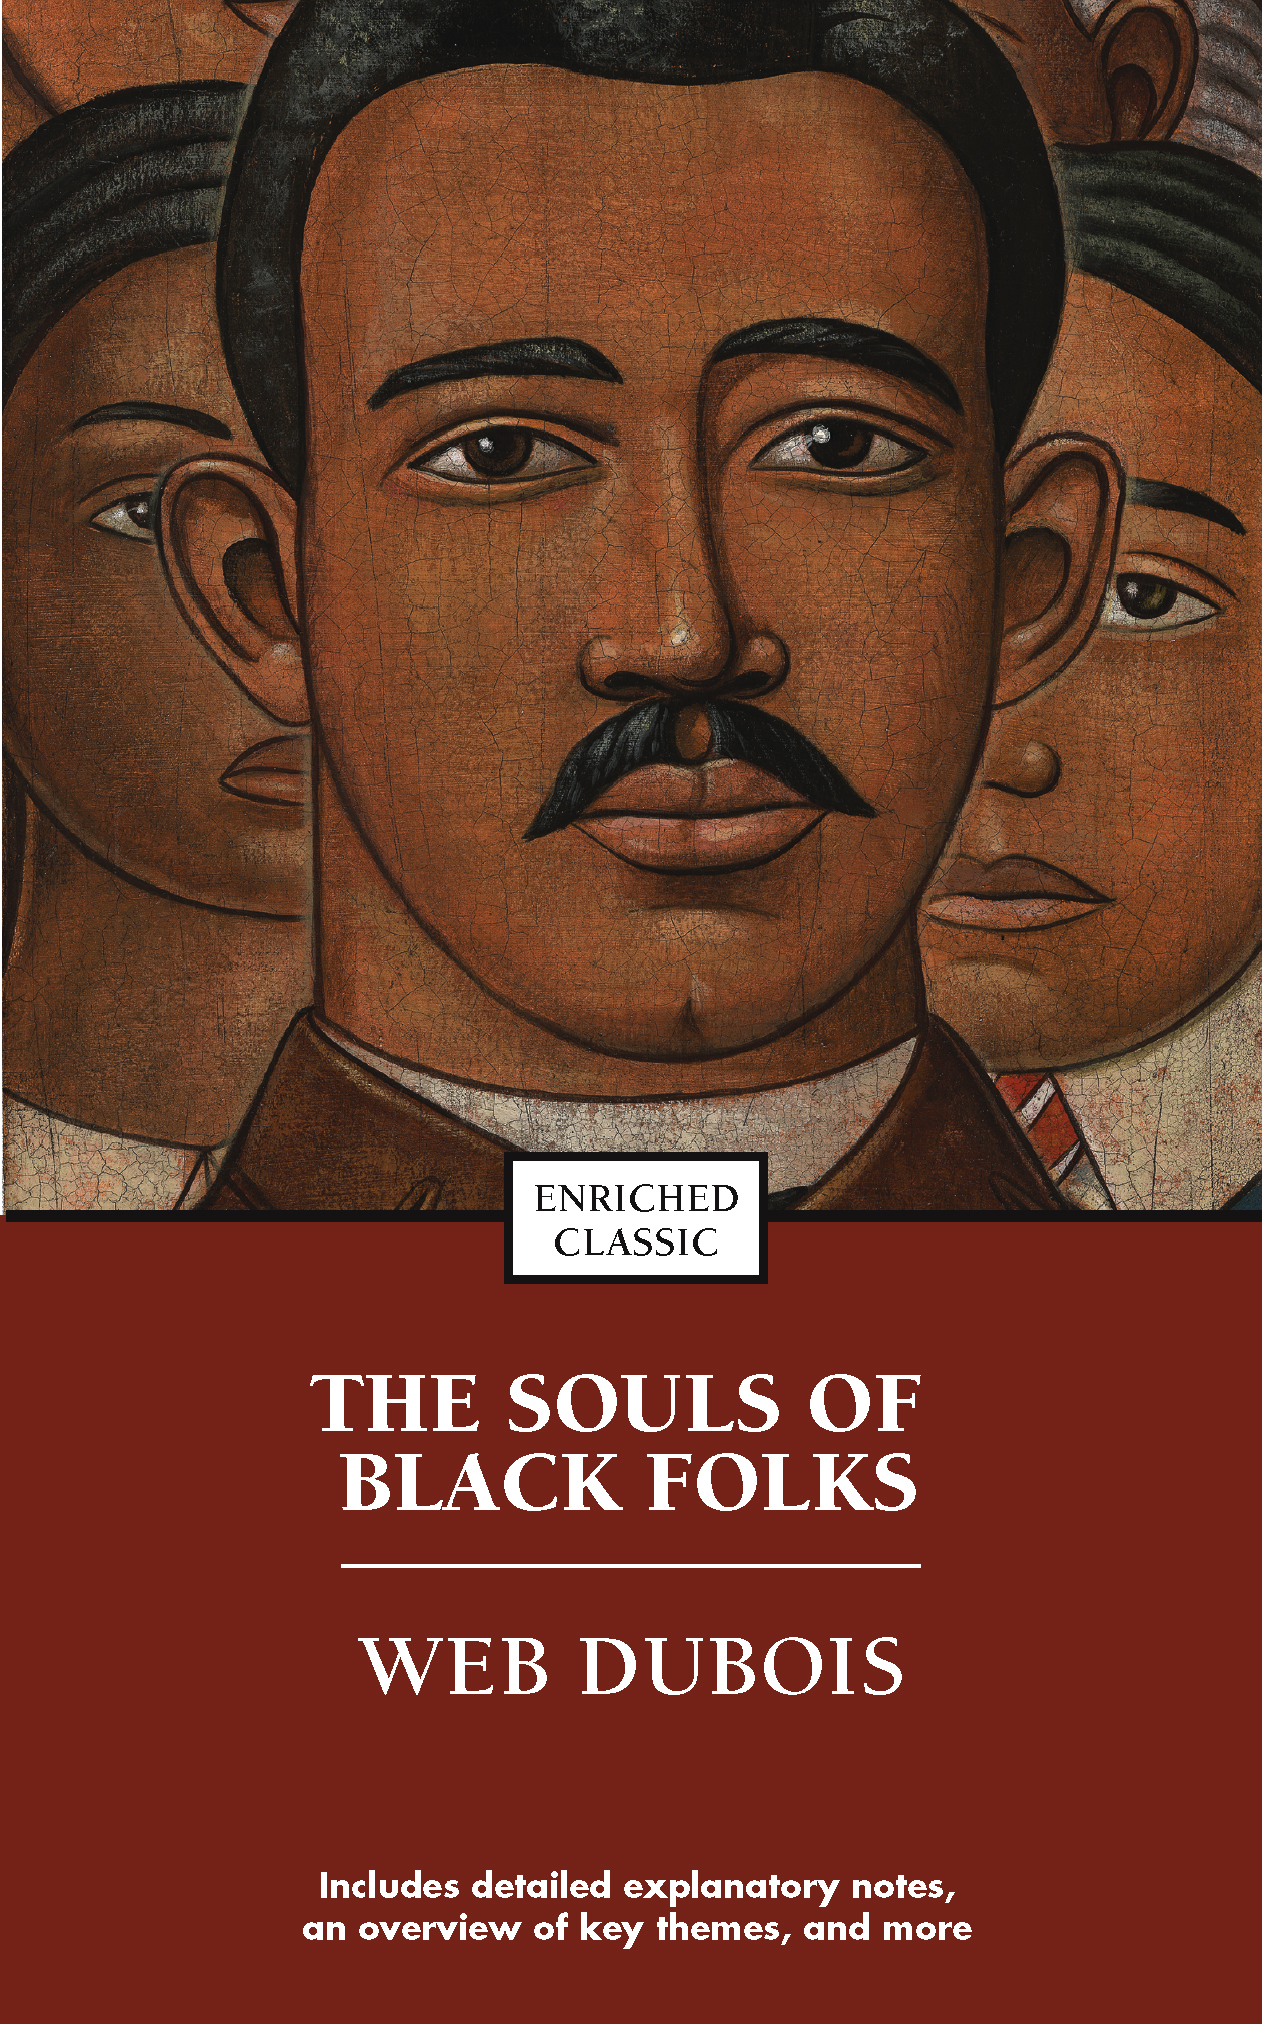 """The Souls of Black Folk"": W. E. B. Du Bois' contribution to literature"